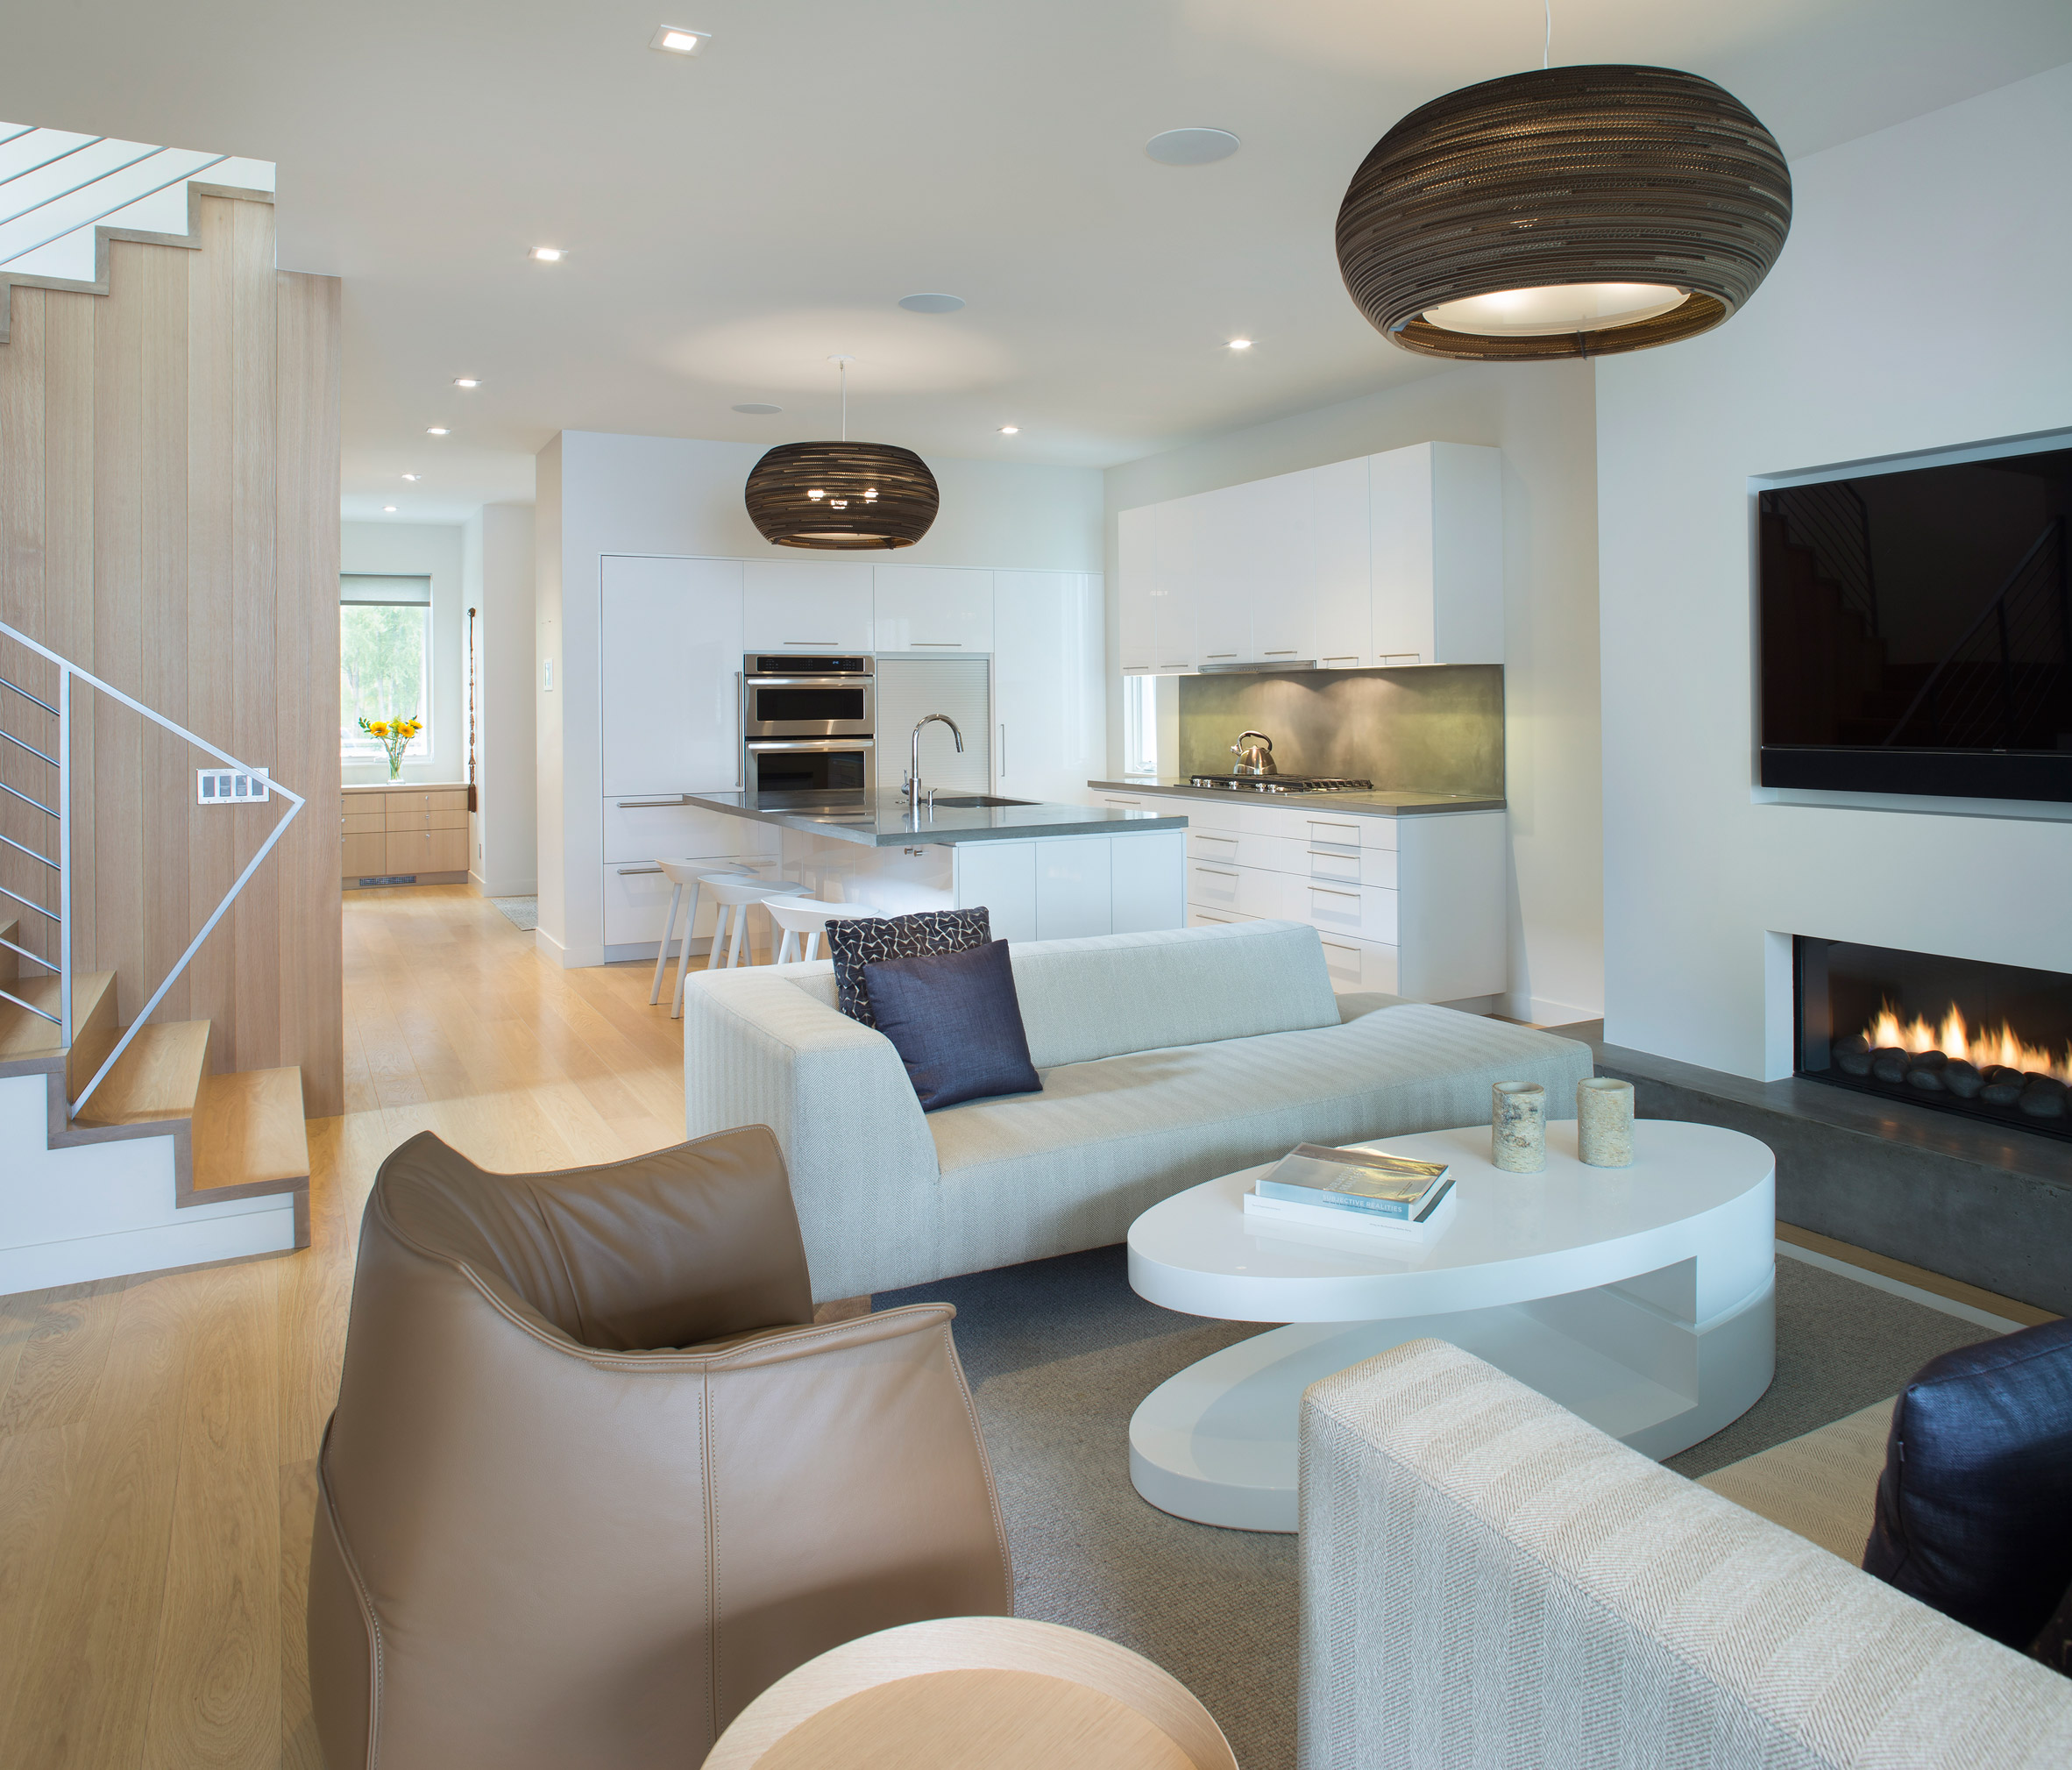 Game On residence by Rowland + Broughton